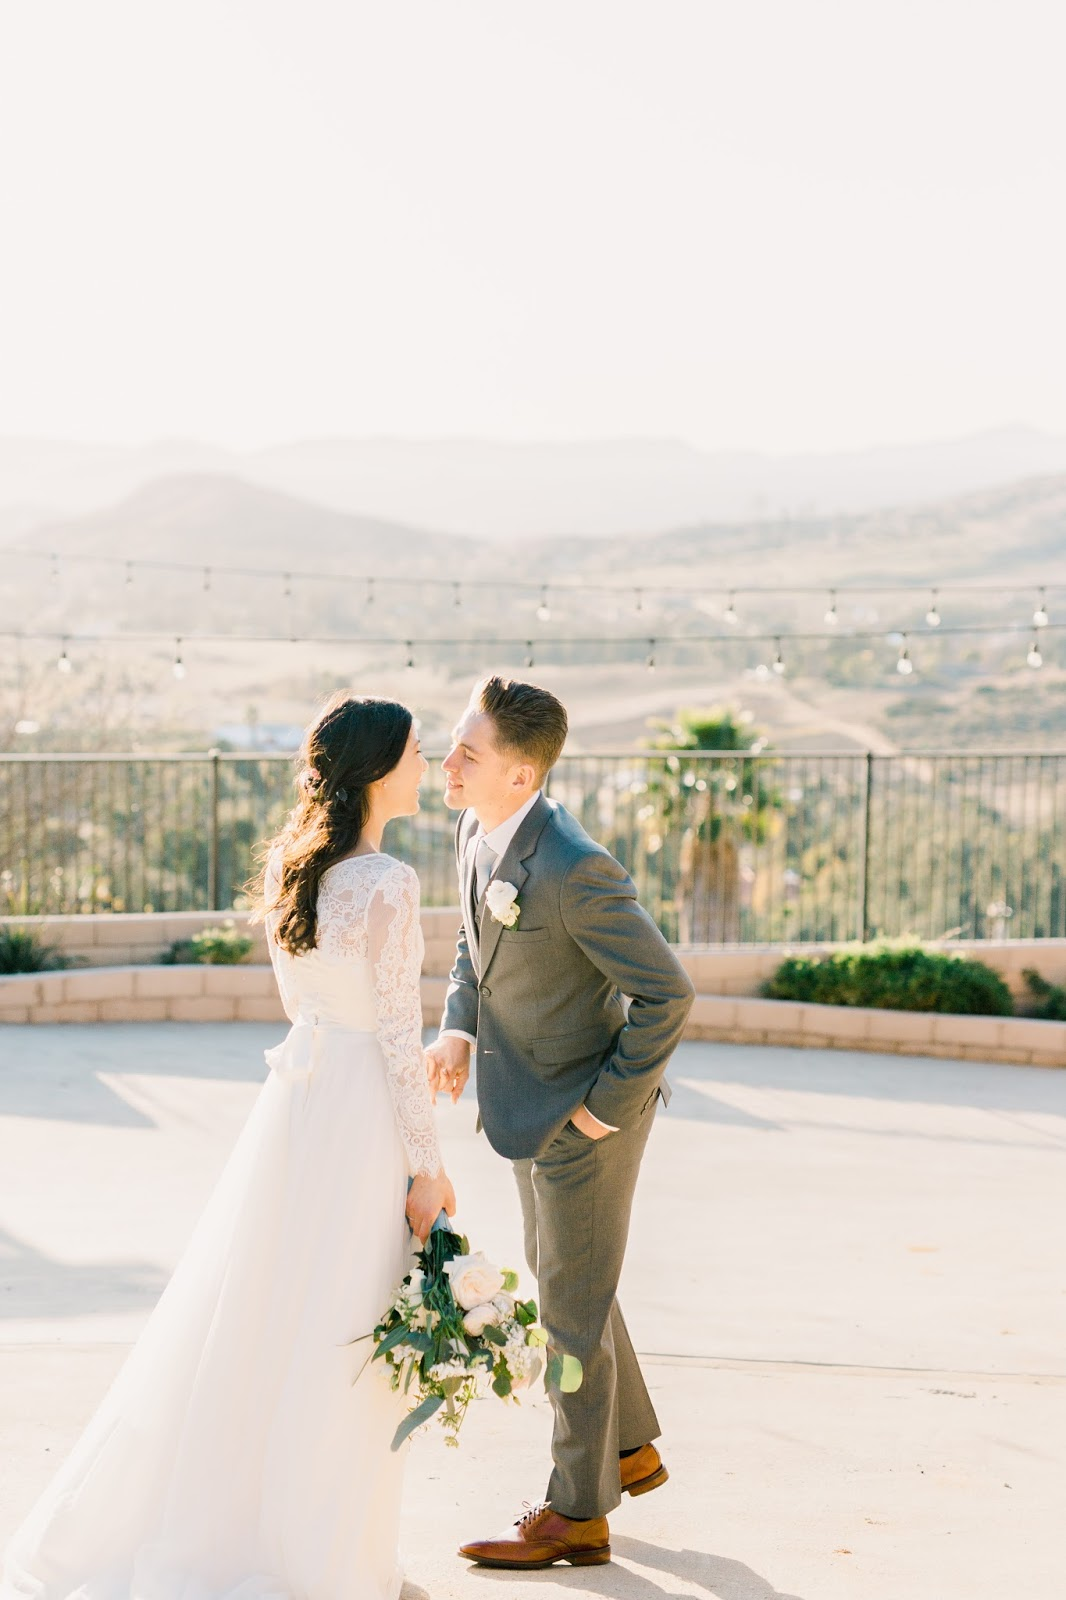 Cordiano Winery-Romantic Vineyard Wedding-Boho Bride-San Diego Photographer-Something Minted Photography